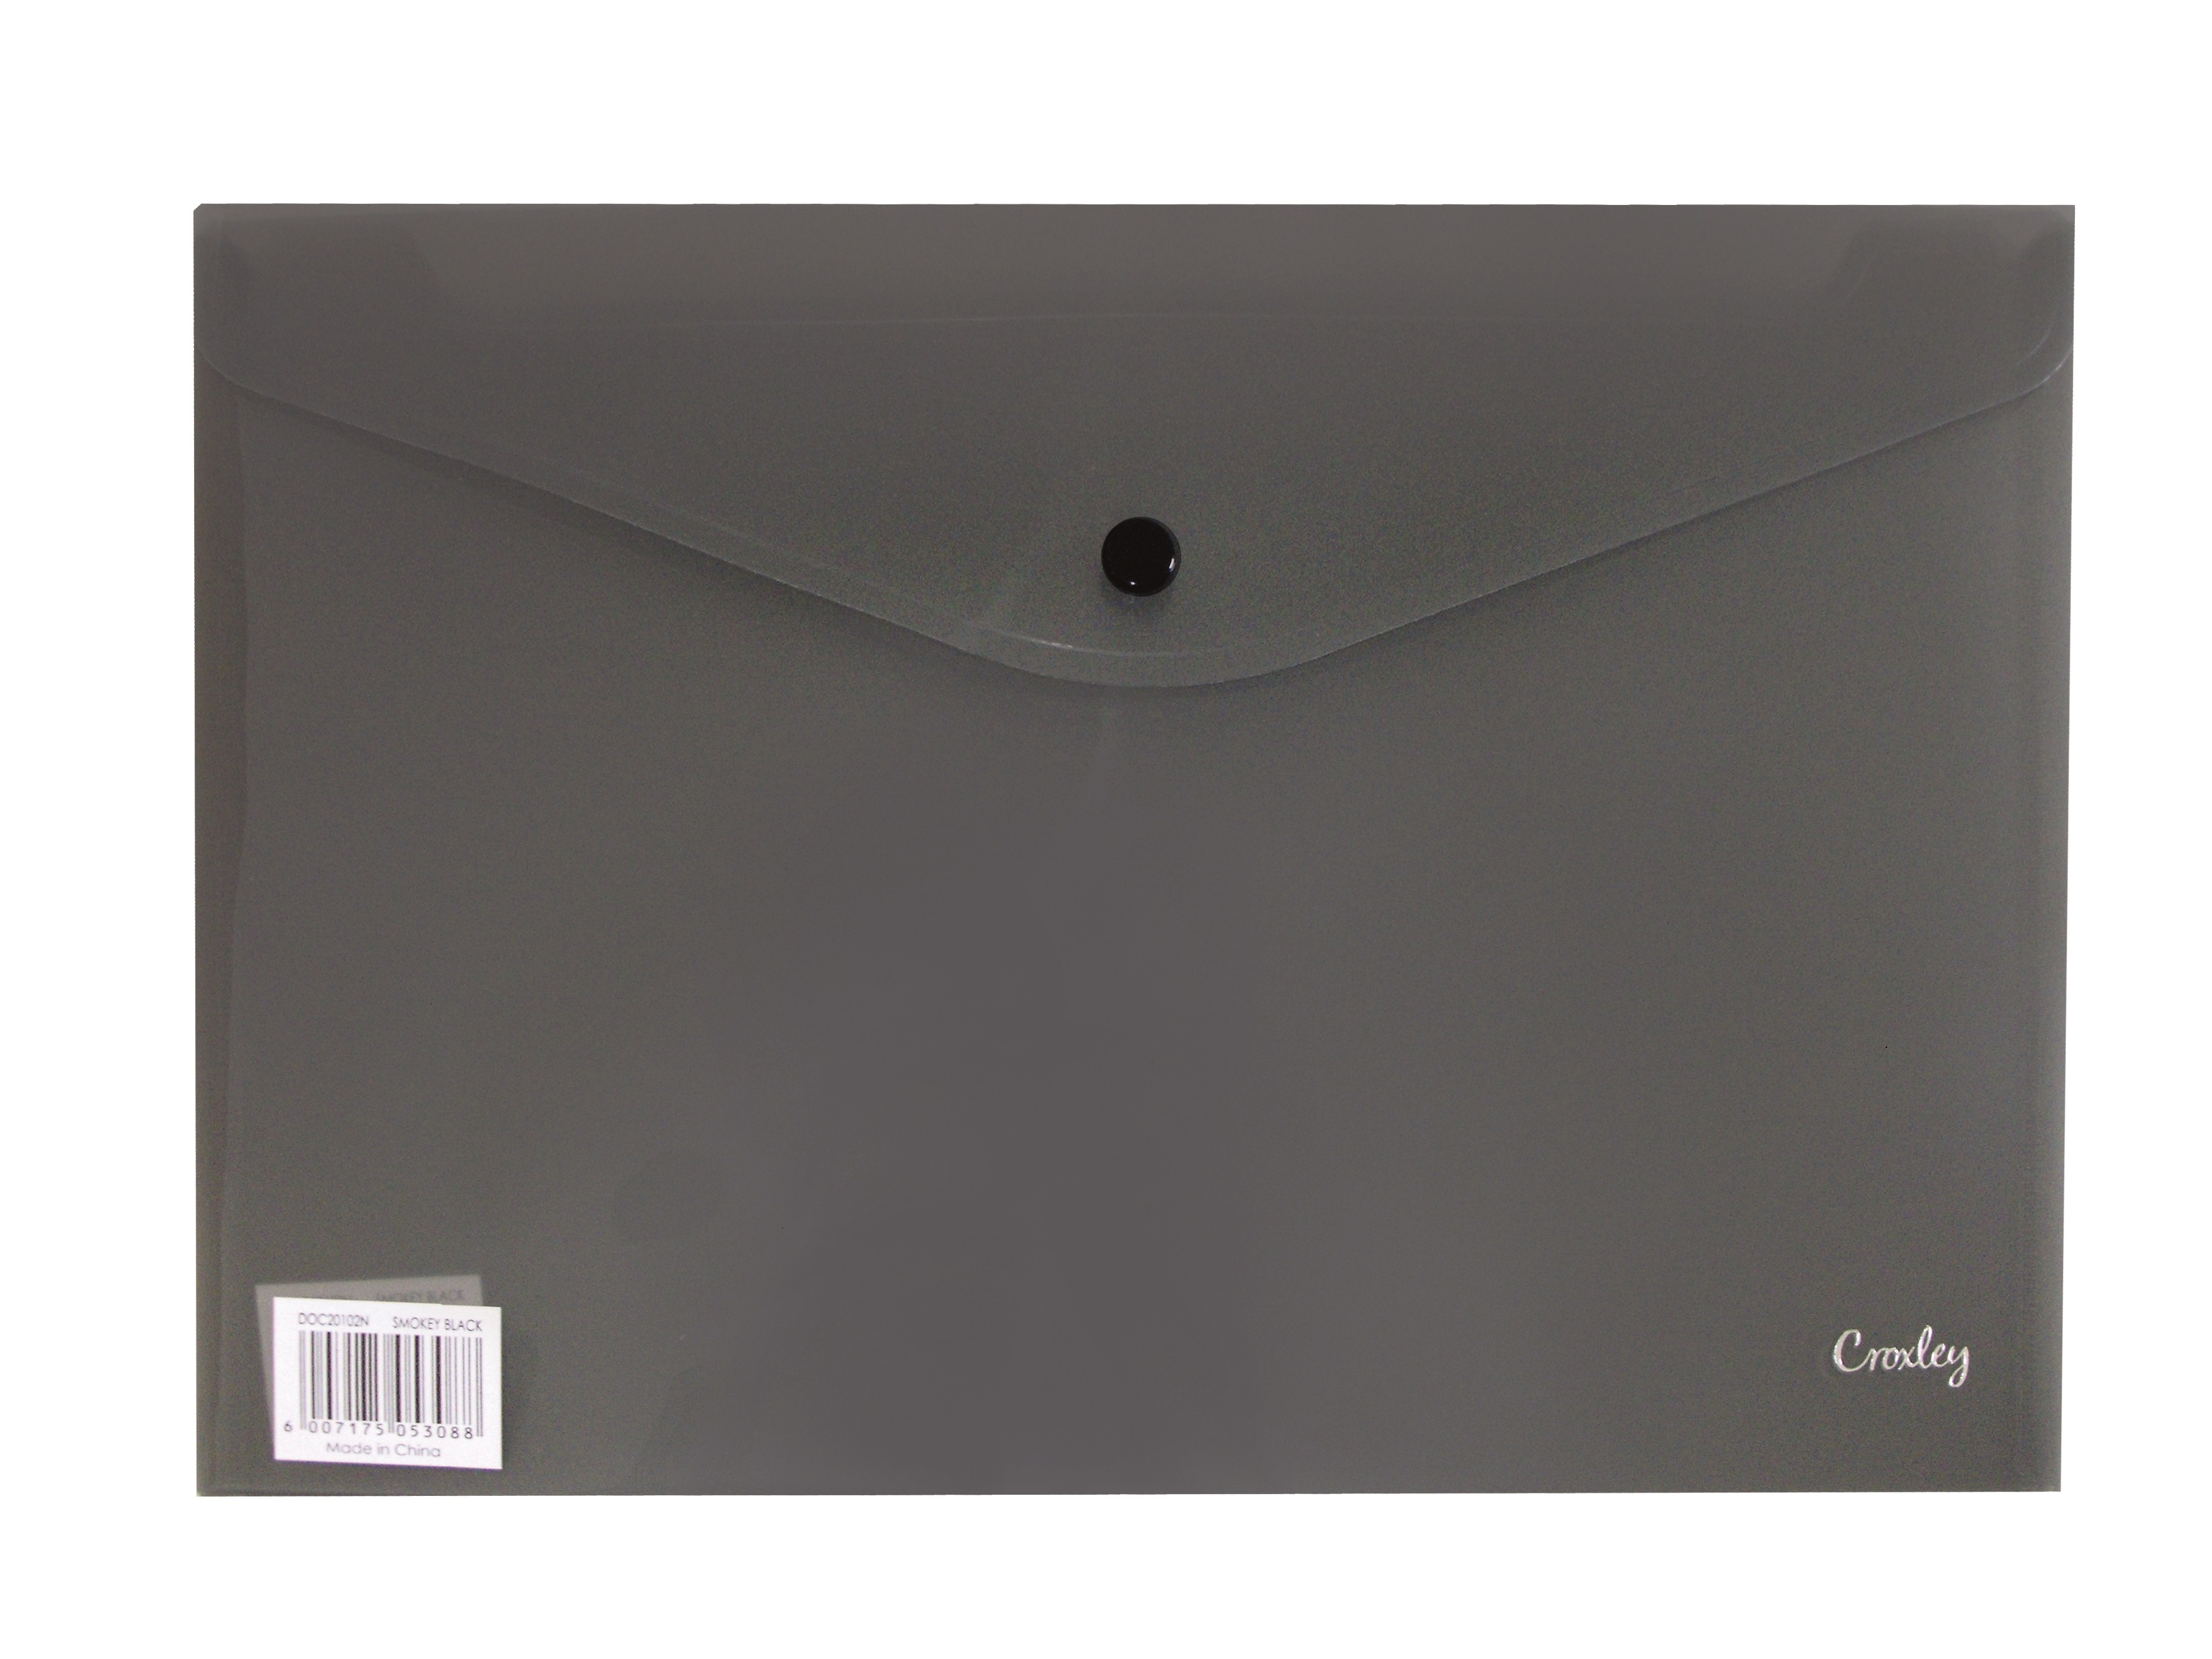 Croxley A4 Envelope with Button - Black PK 12